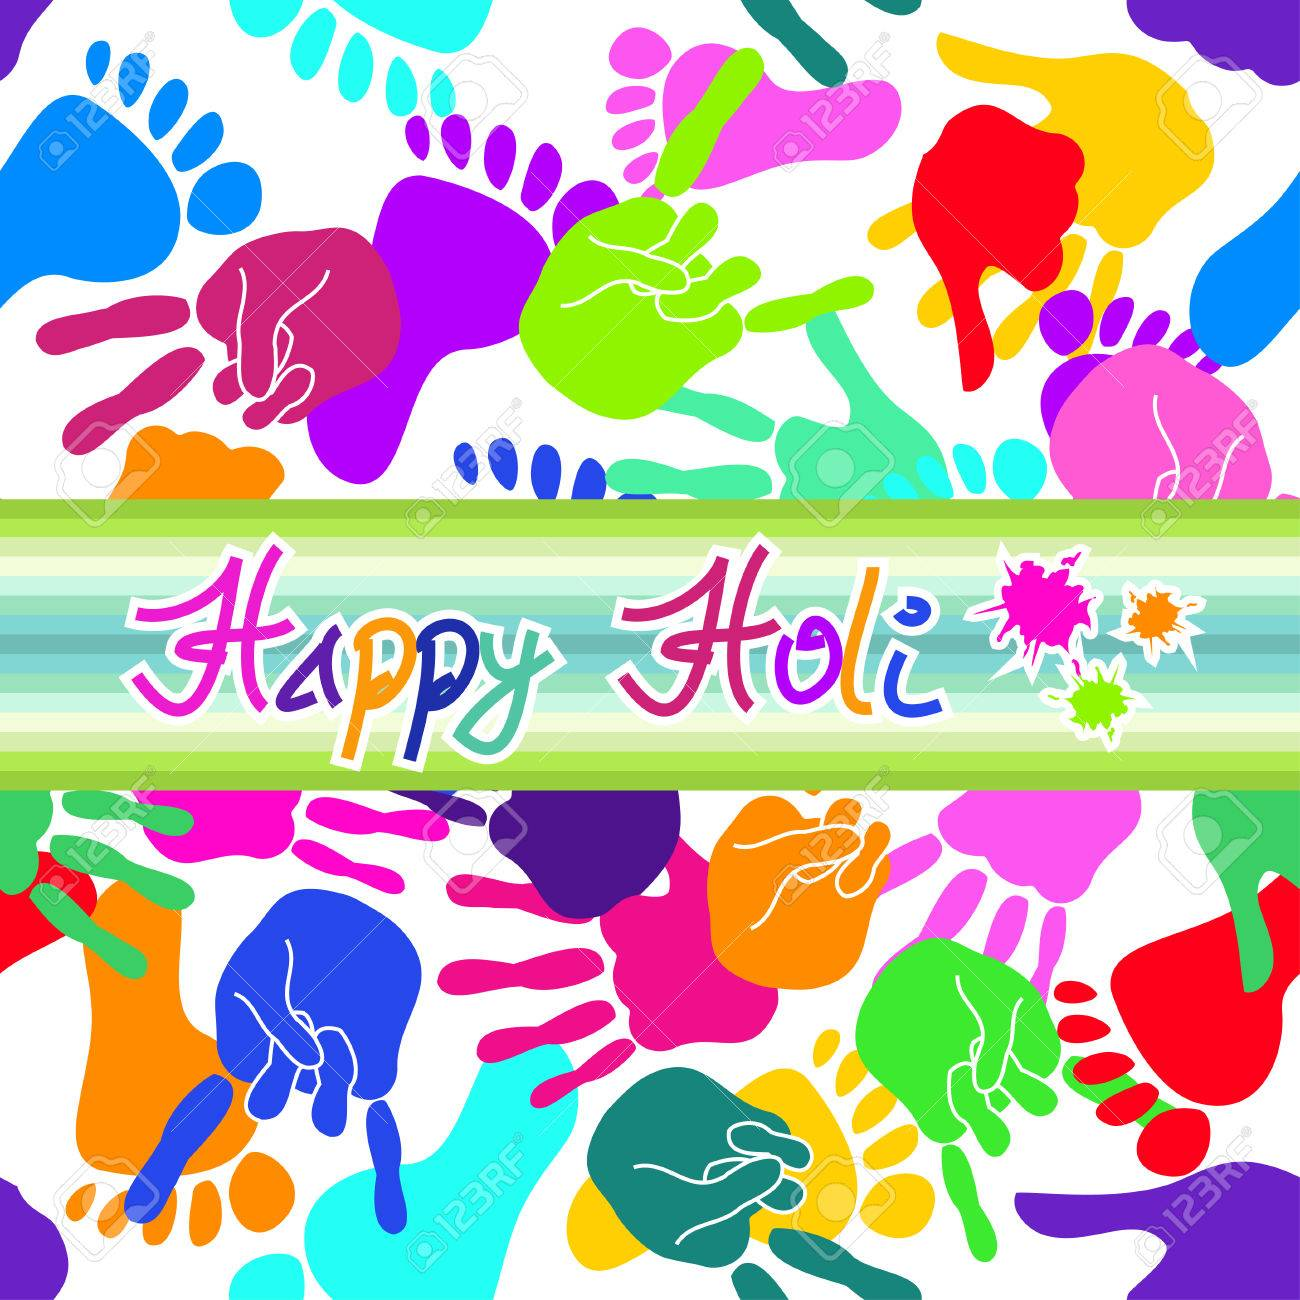 Colorful Happy Holi background with handprints and footprints Stock Vector - 23498768